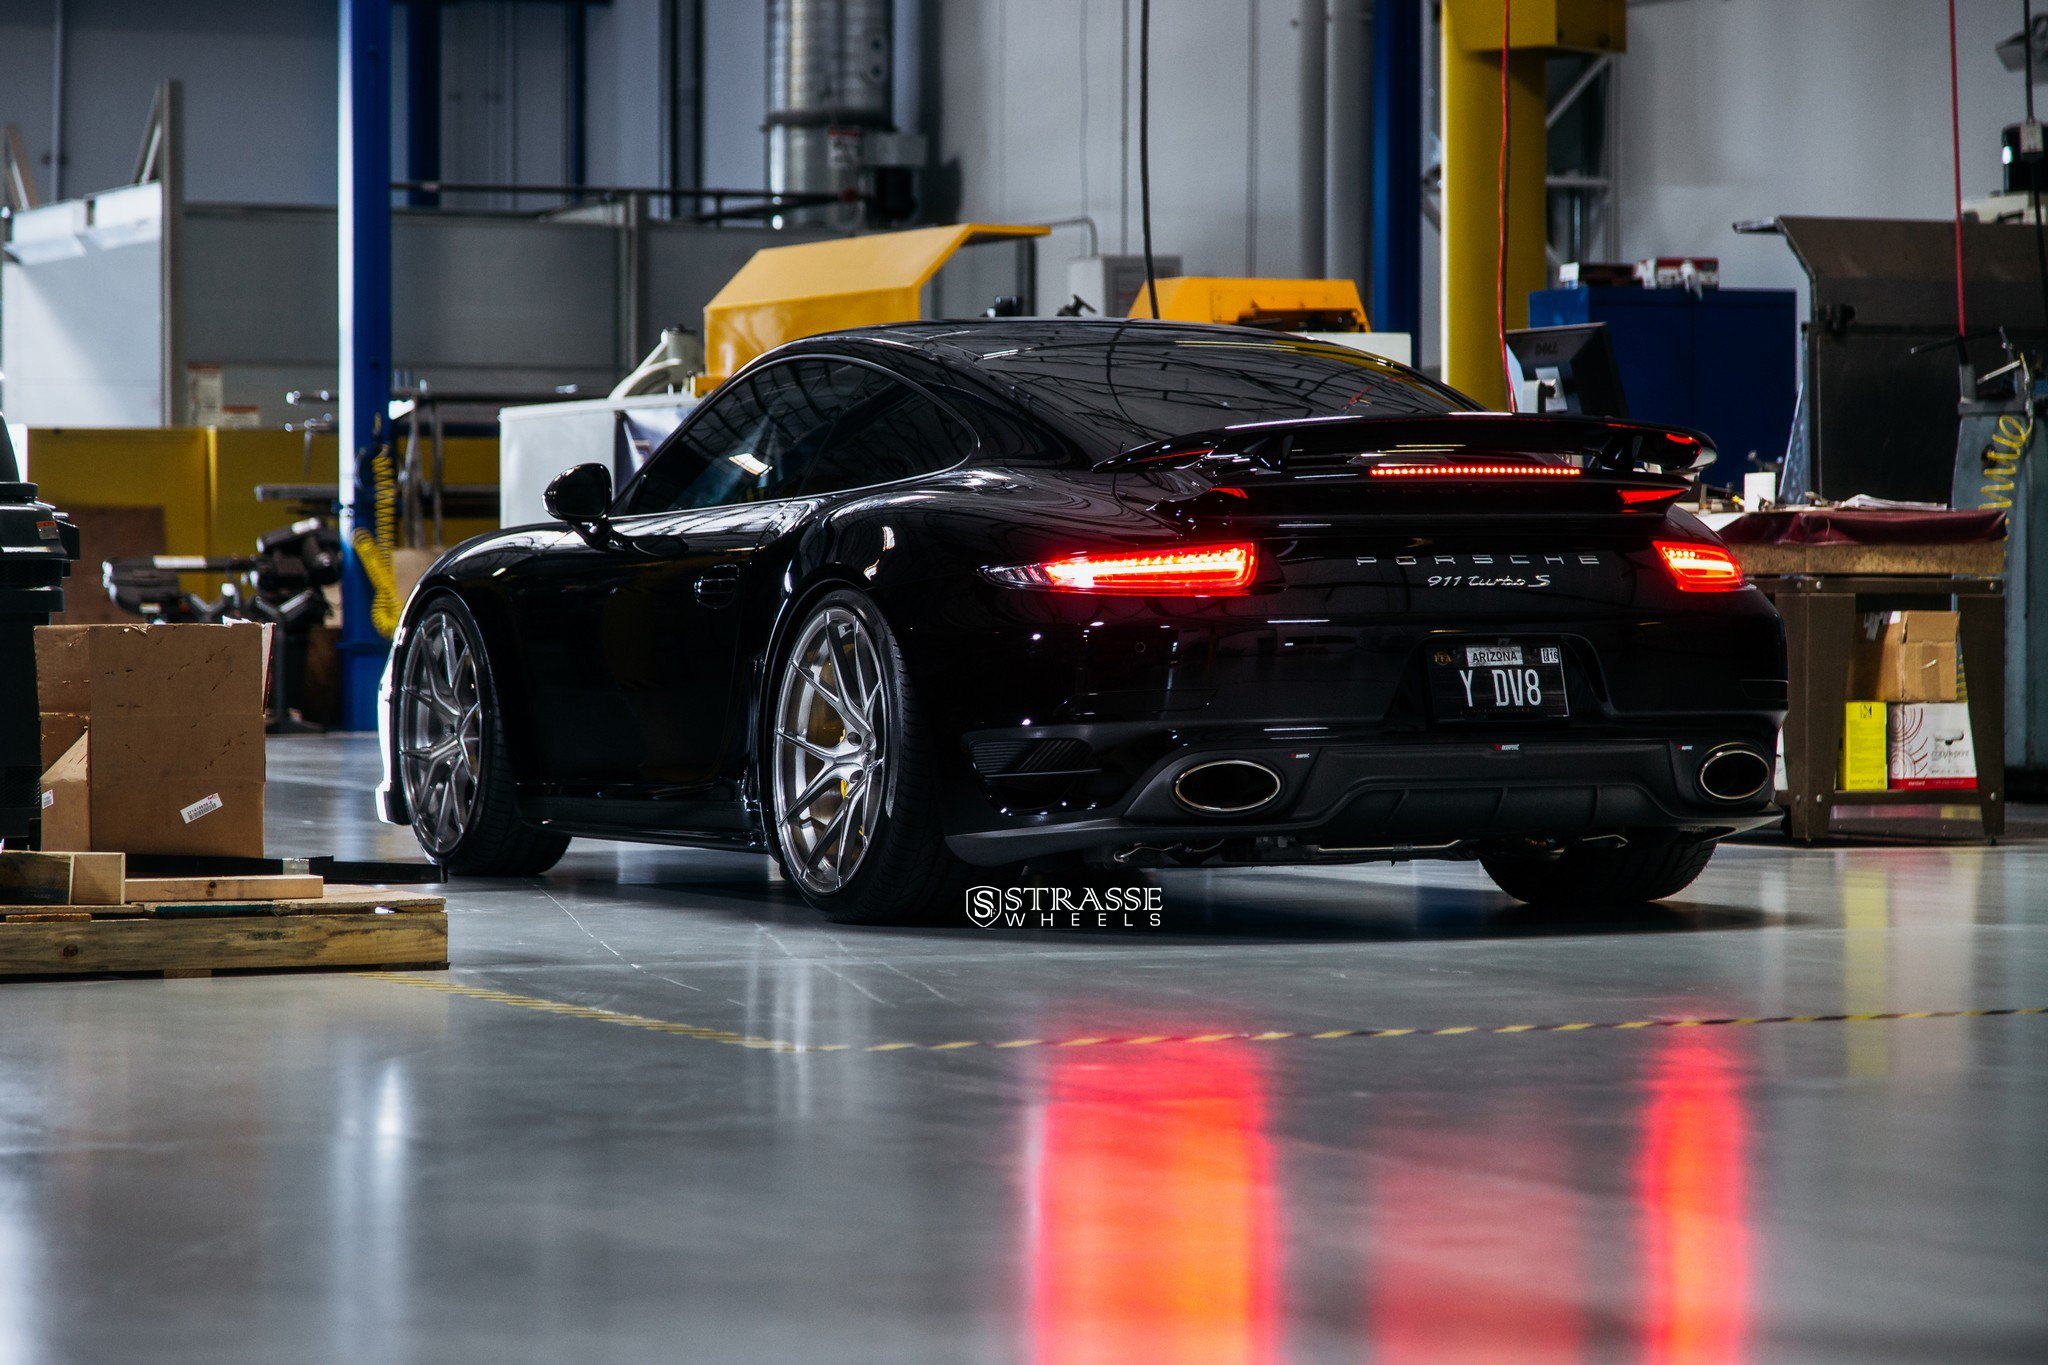 Black Porsche 911 Turbo S With Red LED Taillights   Photo By Strasse Forged